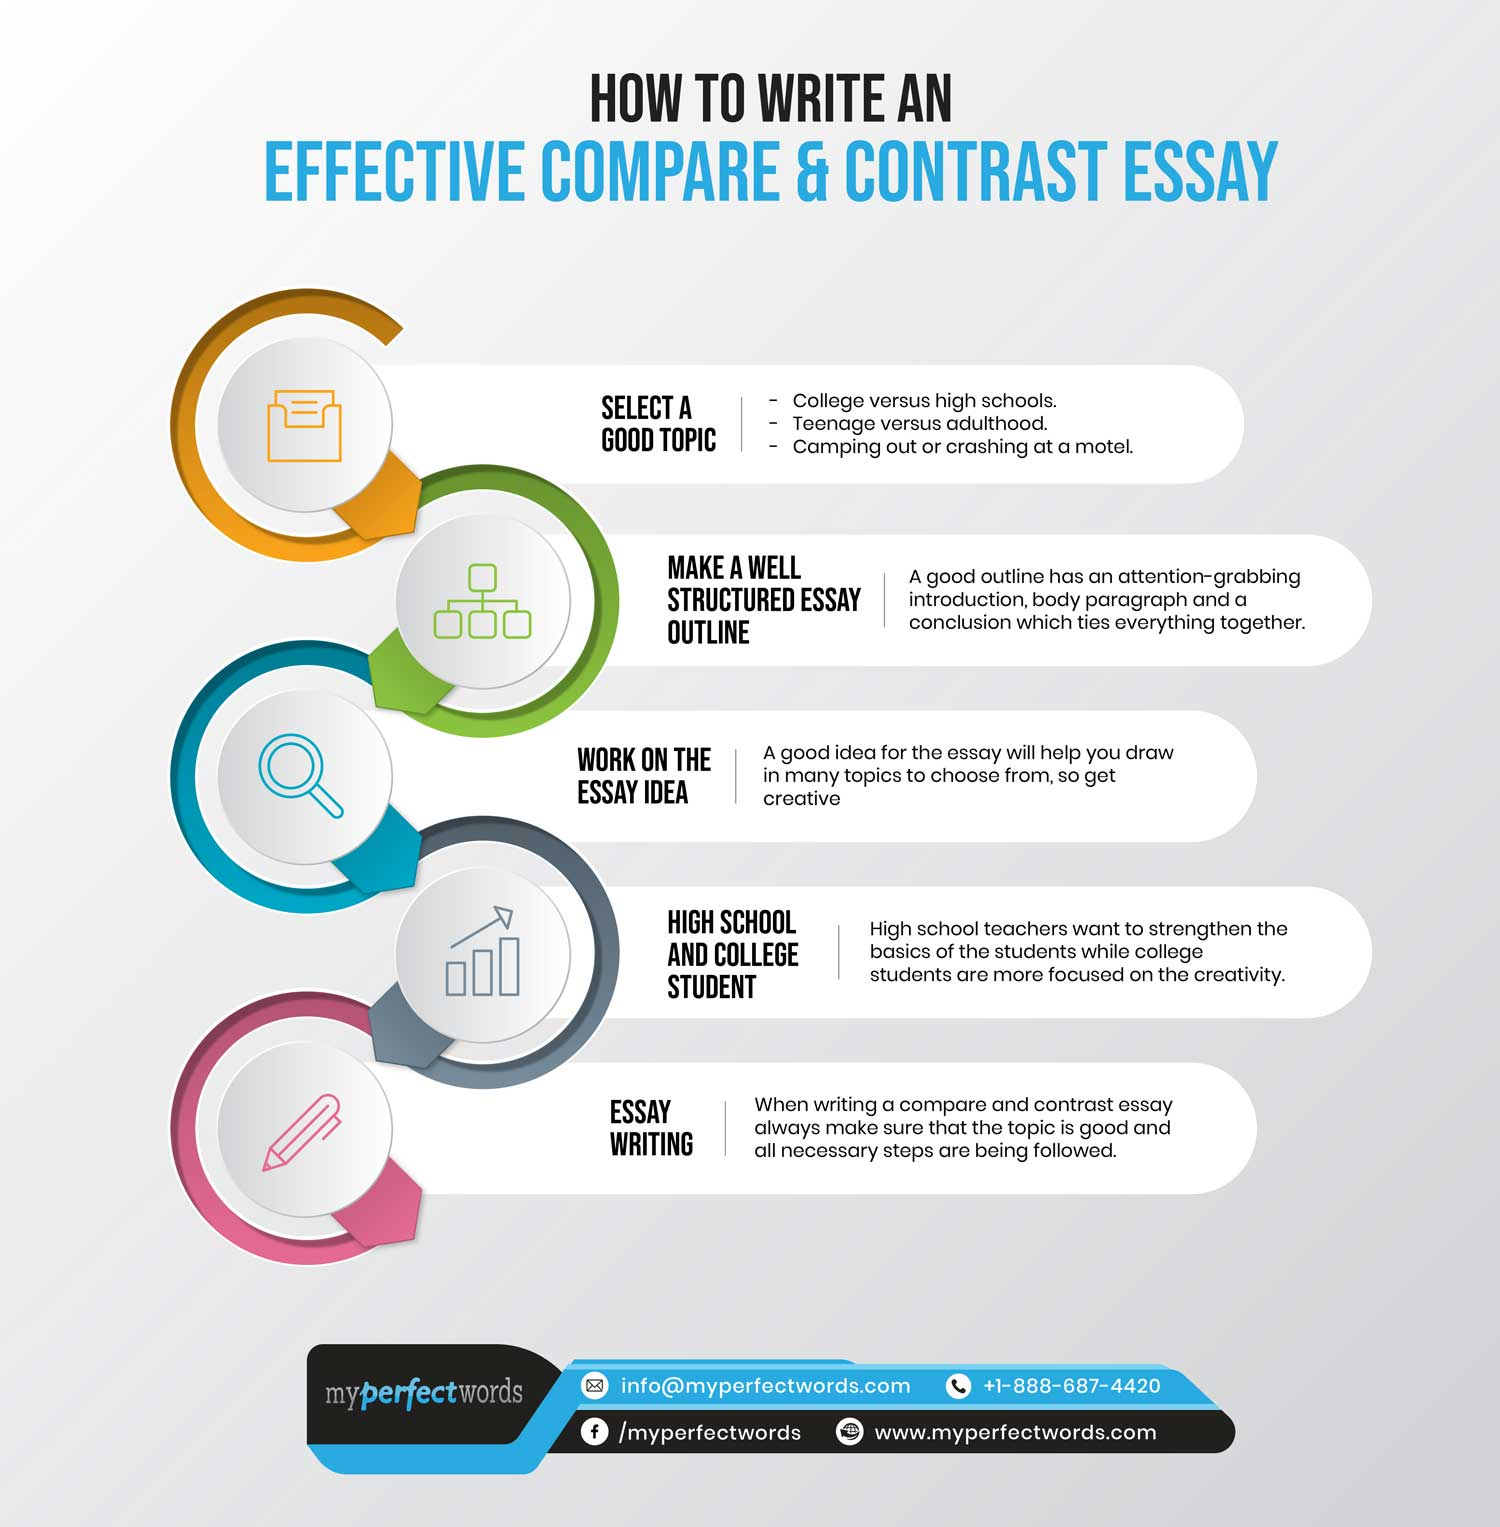 How To Write A Good Essay For High School  High School Essay Samples also English Essay Ideas Compare And Contrast Essay Writing  A Complete Guide Process Paper Essay